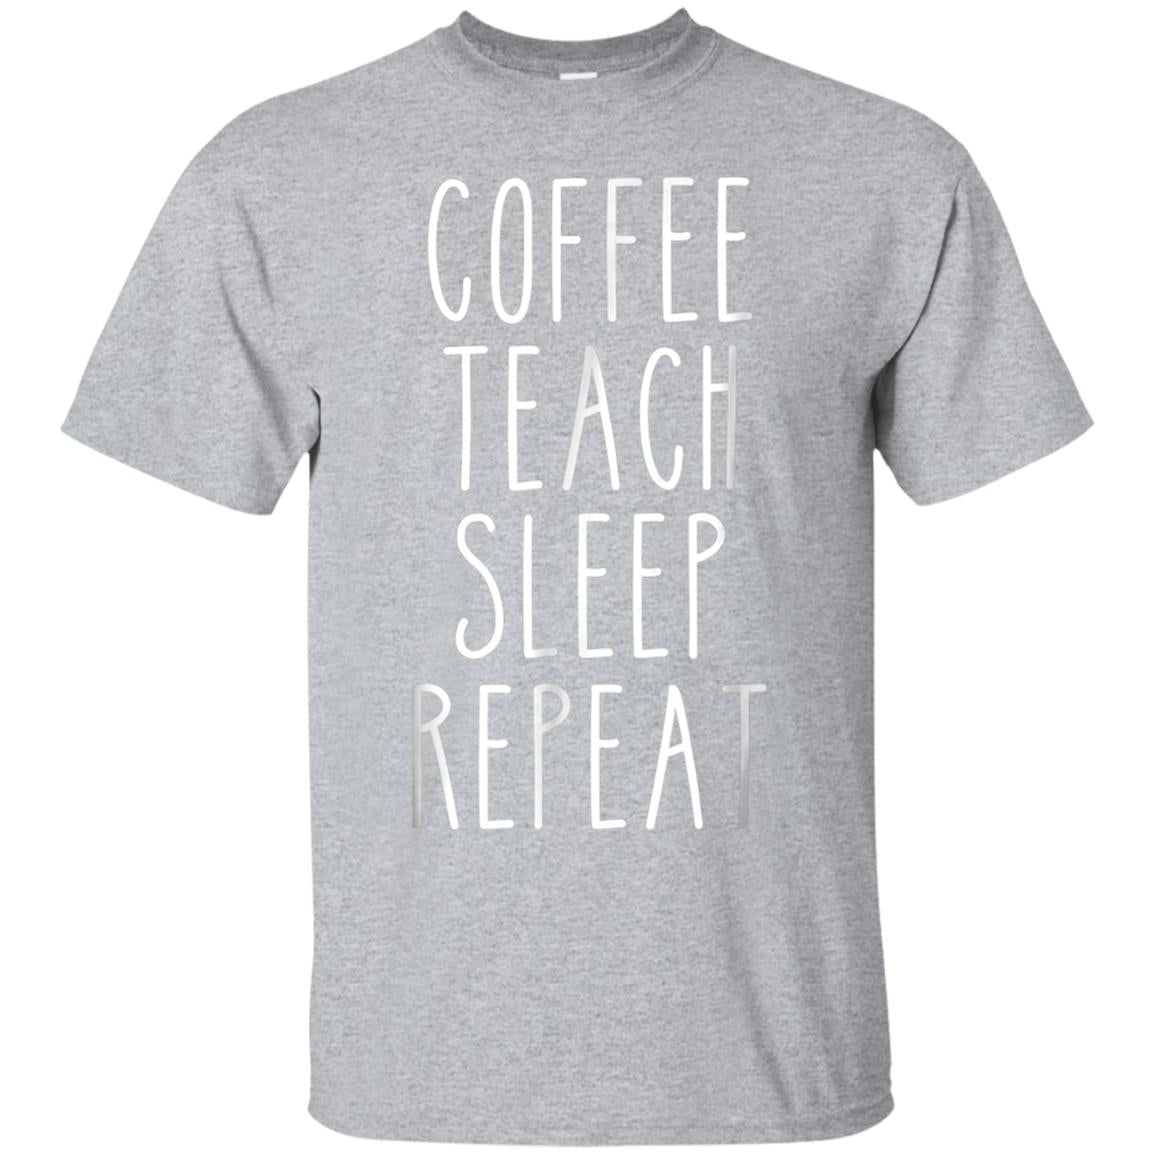 Coffee Teach Sleep Repeat Funny Teacher Shirts Gifts 99promocode